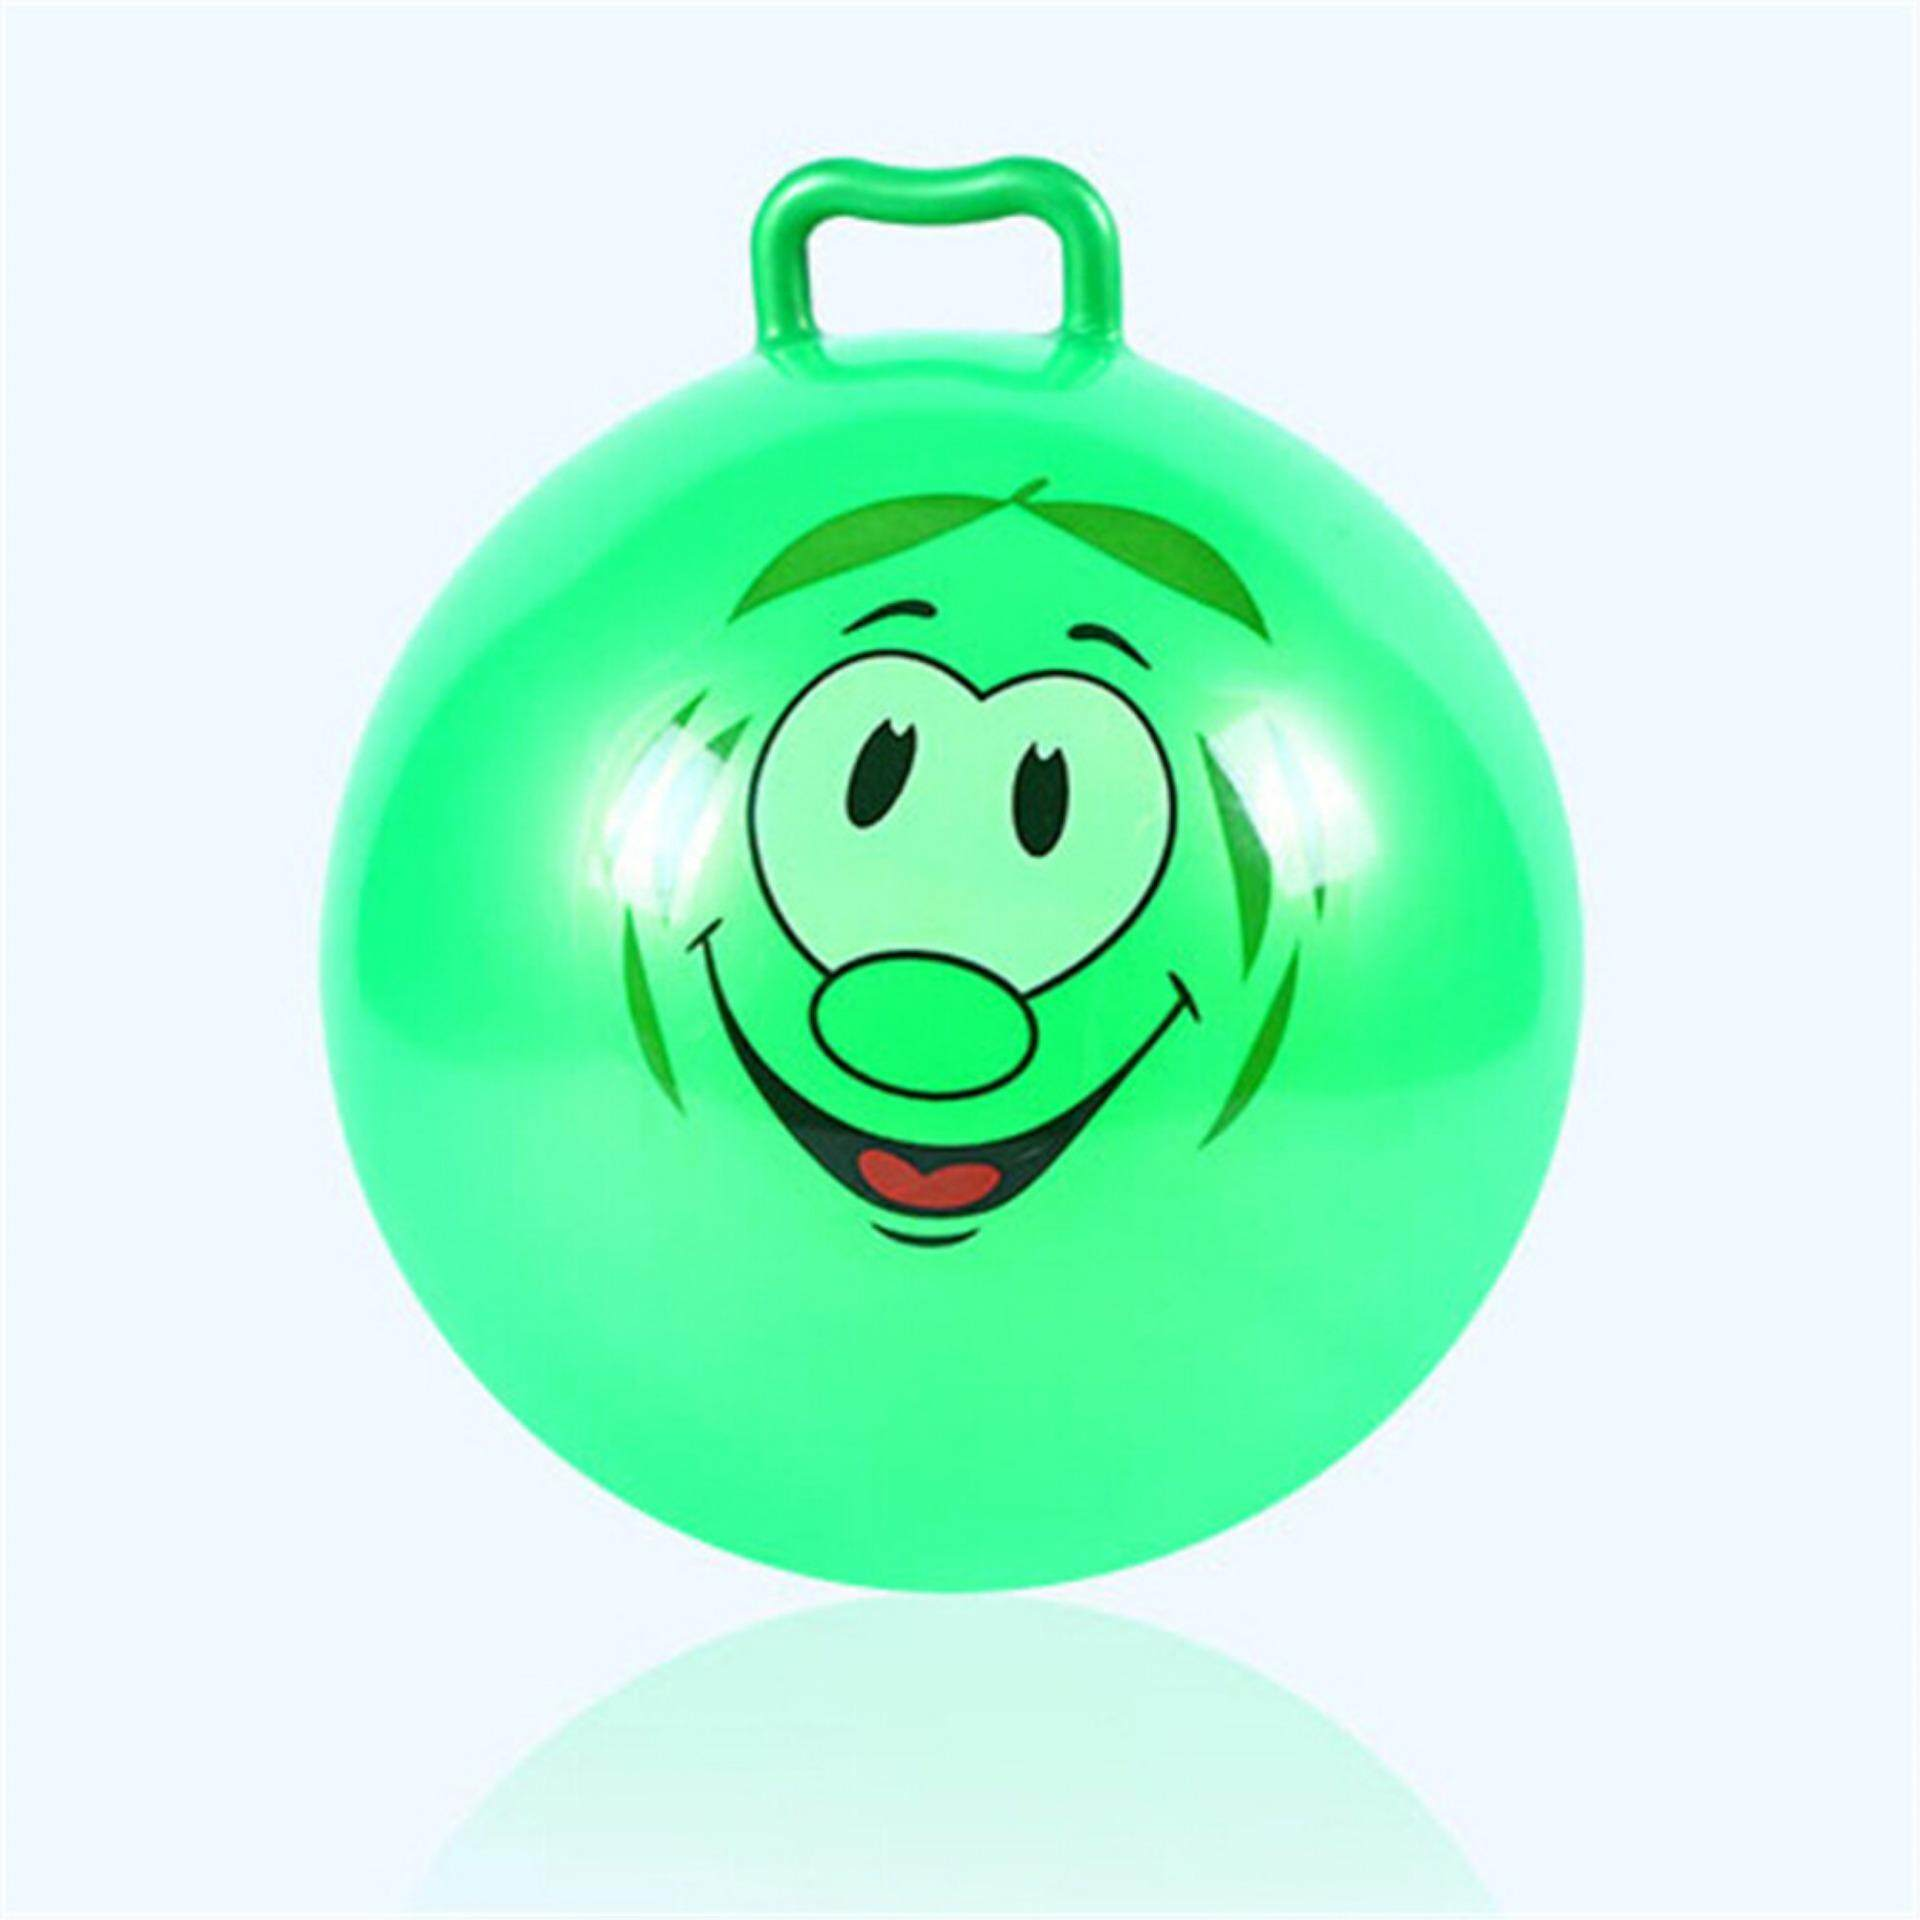 Graceful Inflatable Hopping Jumping Ball Bouncer Hopper Handle Kids Outdoor Fun Beach Toy By Graceful Bearing.